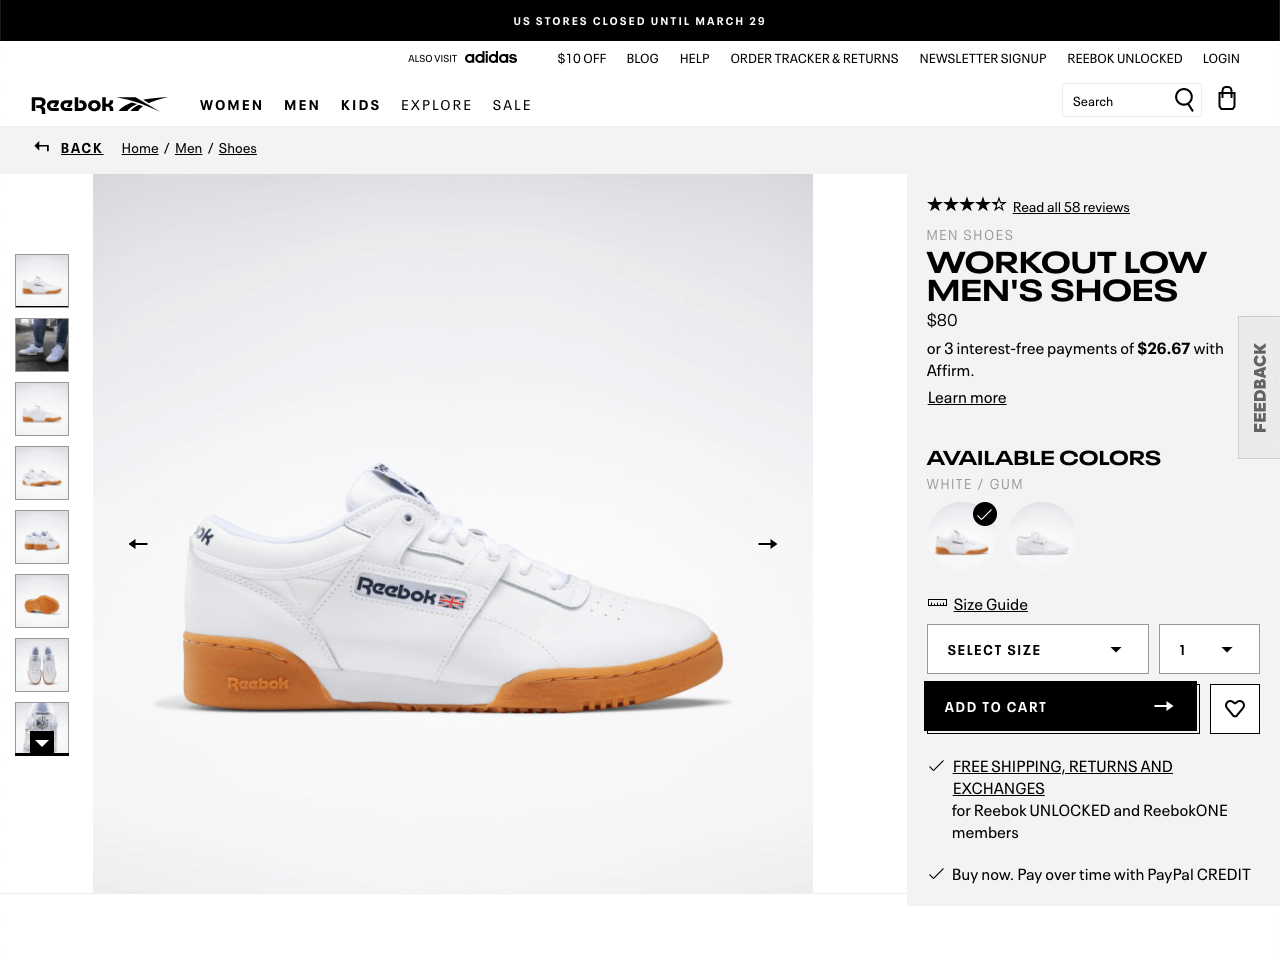 Reebok announces a sitewide sale using a black sticky bar at the top of the page